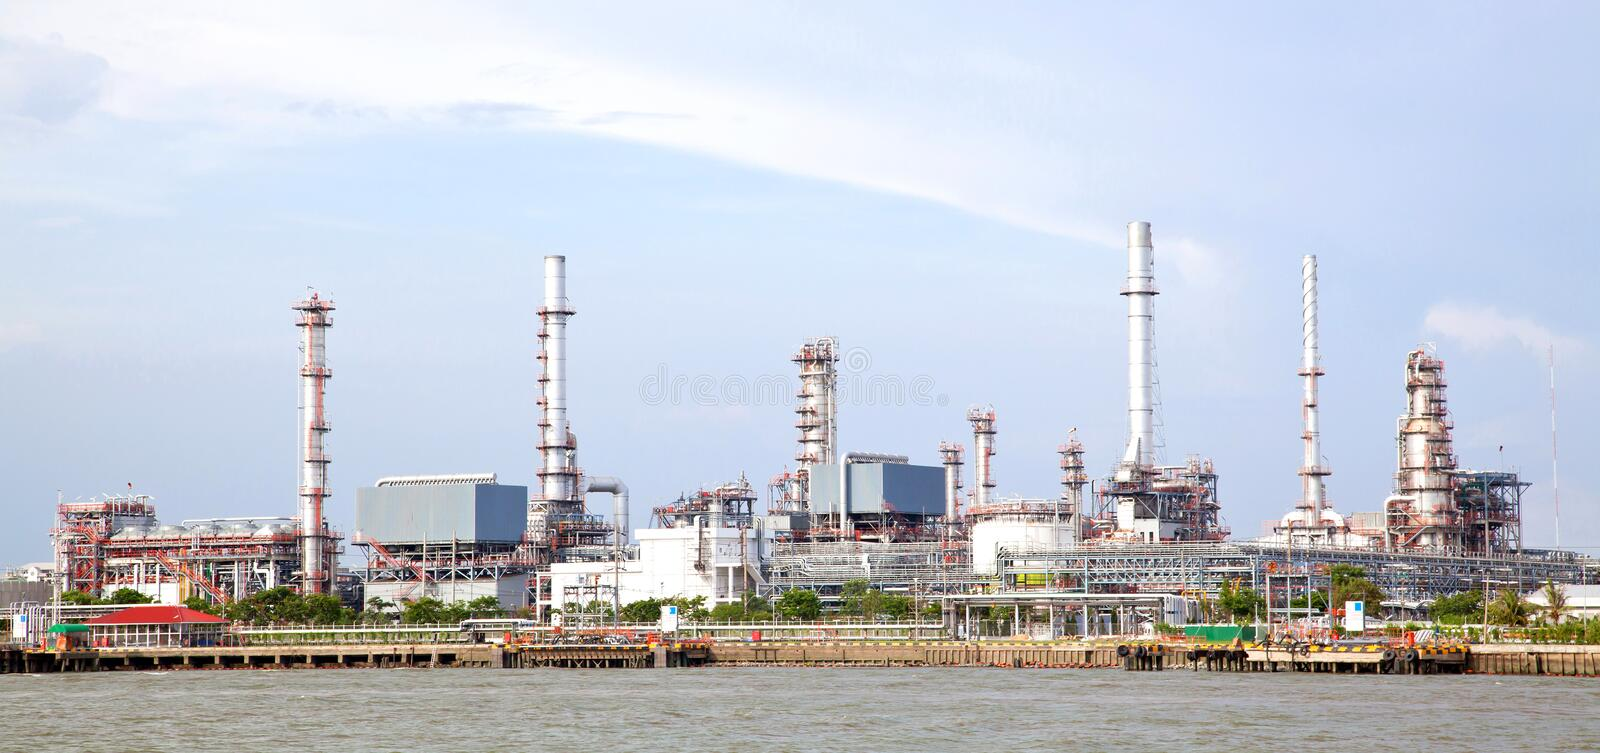 Oil refinery plant. Panorama landscape of Oil refinery plant along river stock photography